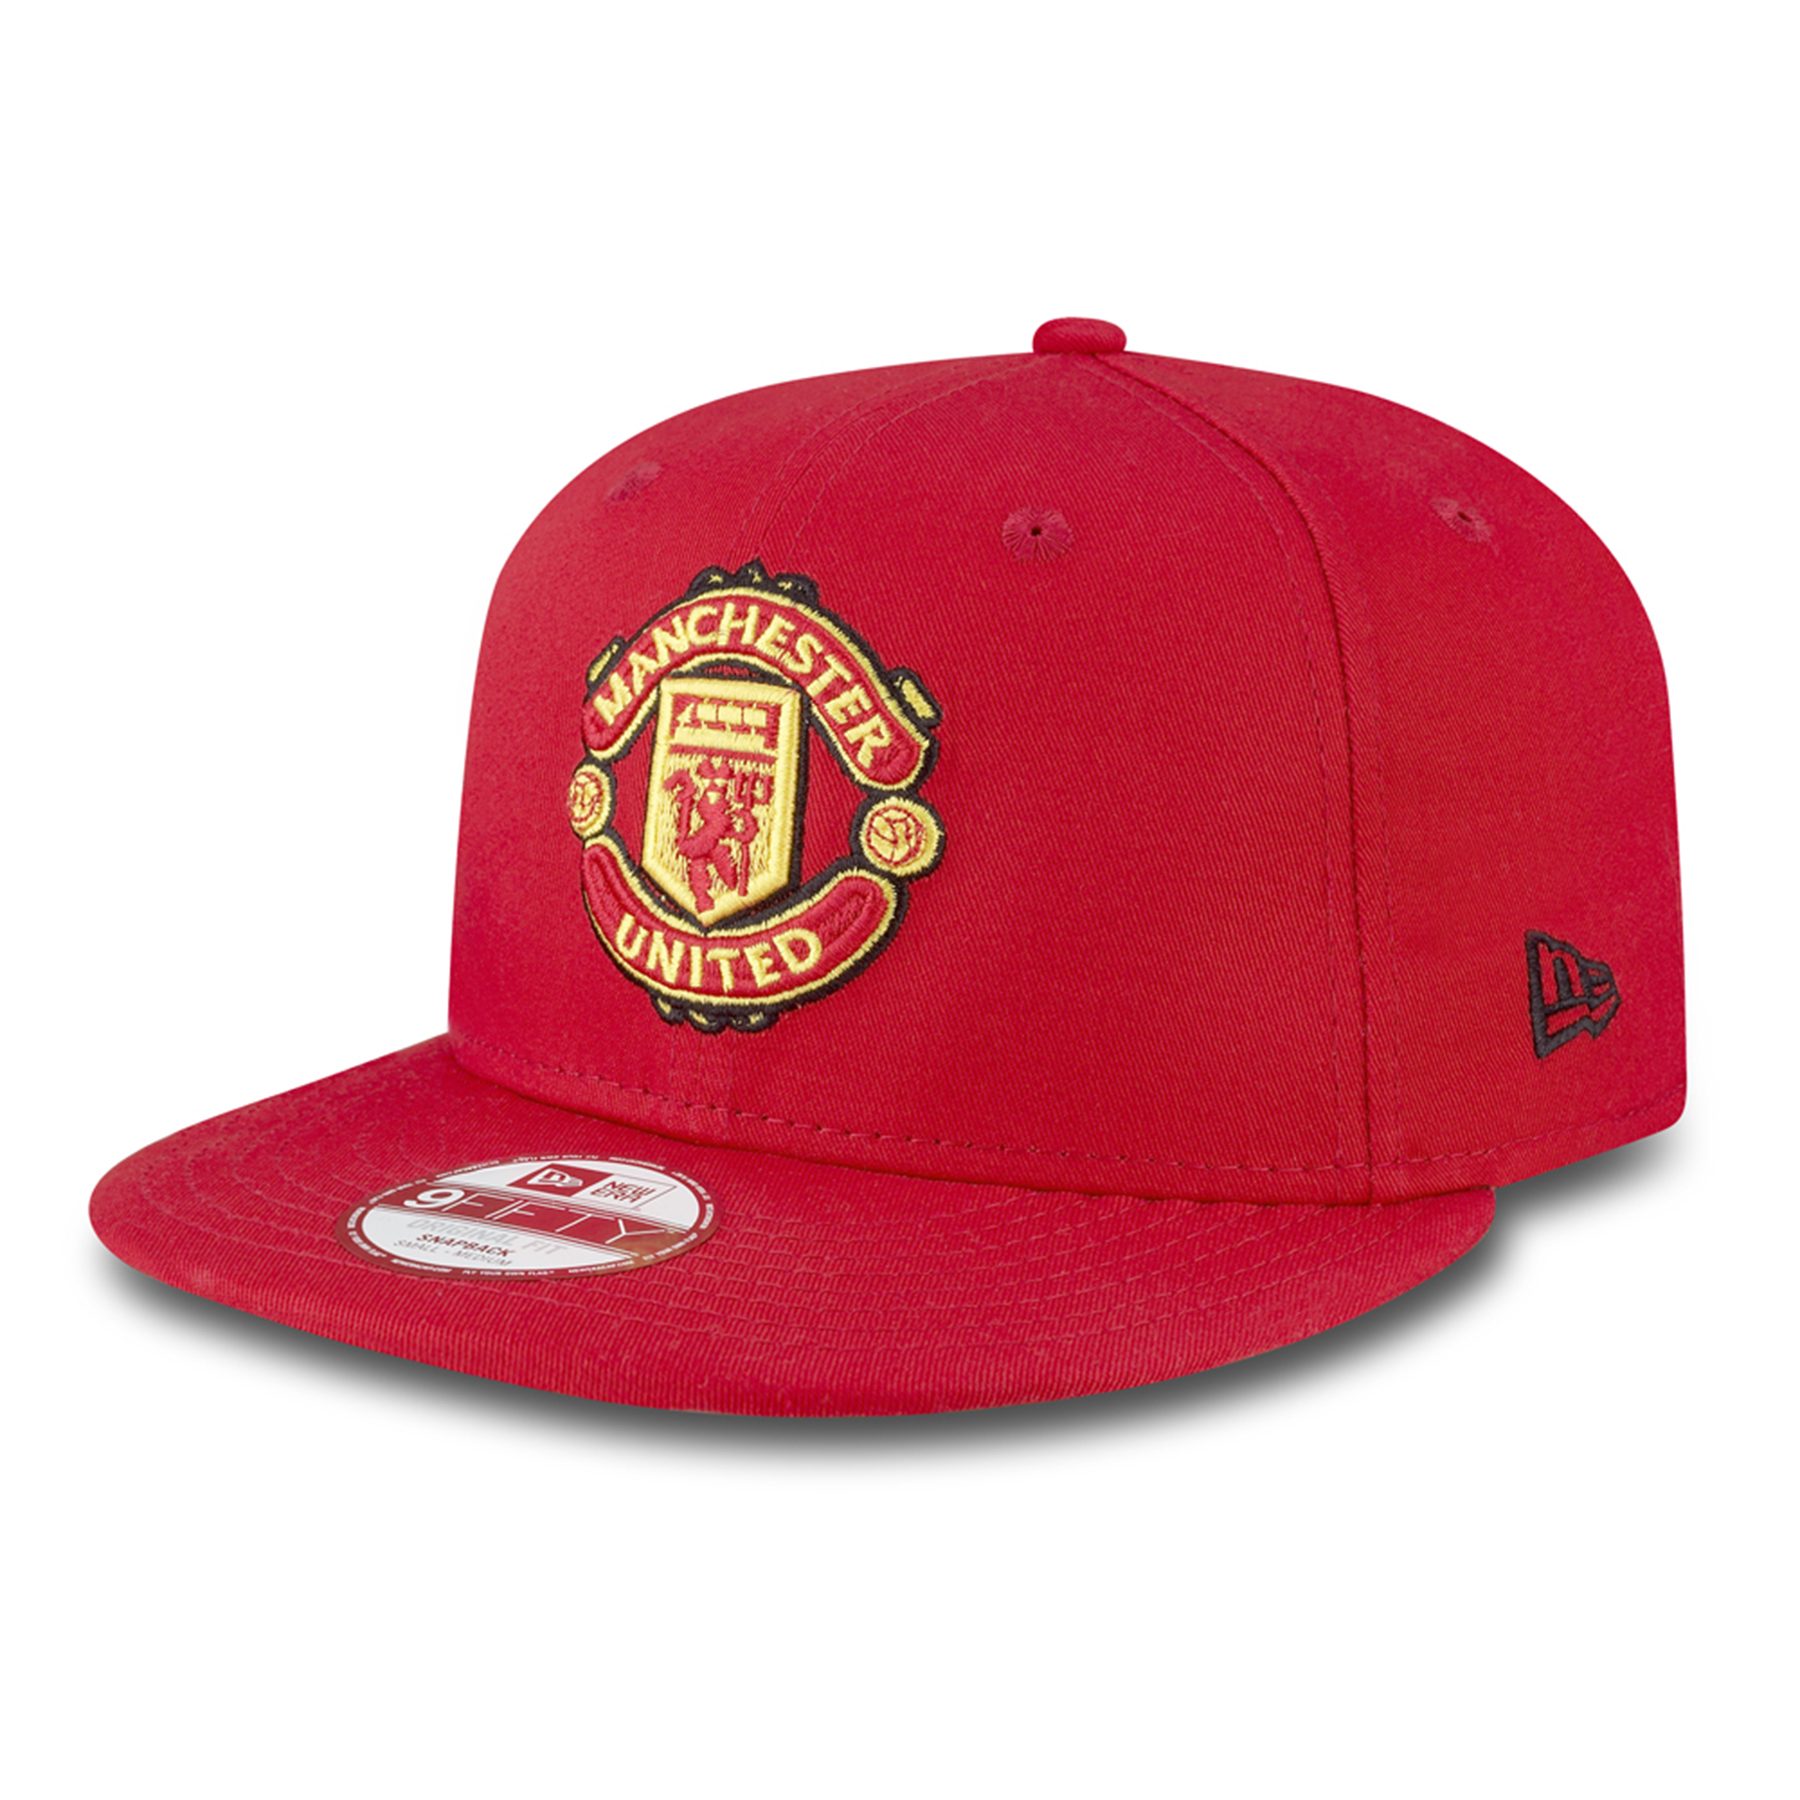 Manchester United New Era Basic 9FIFTY Snapback Cap - Red Adult